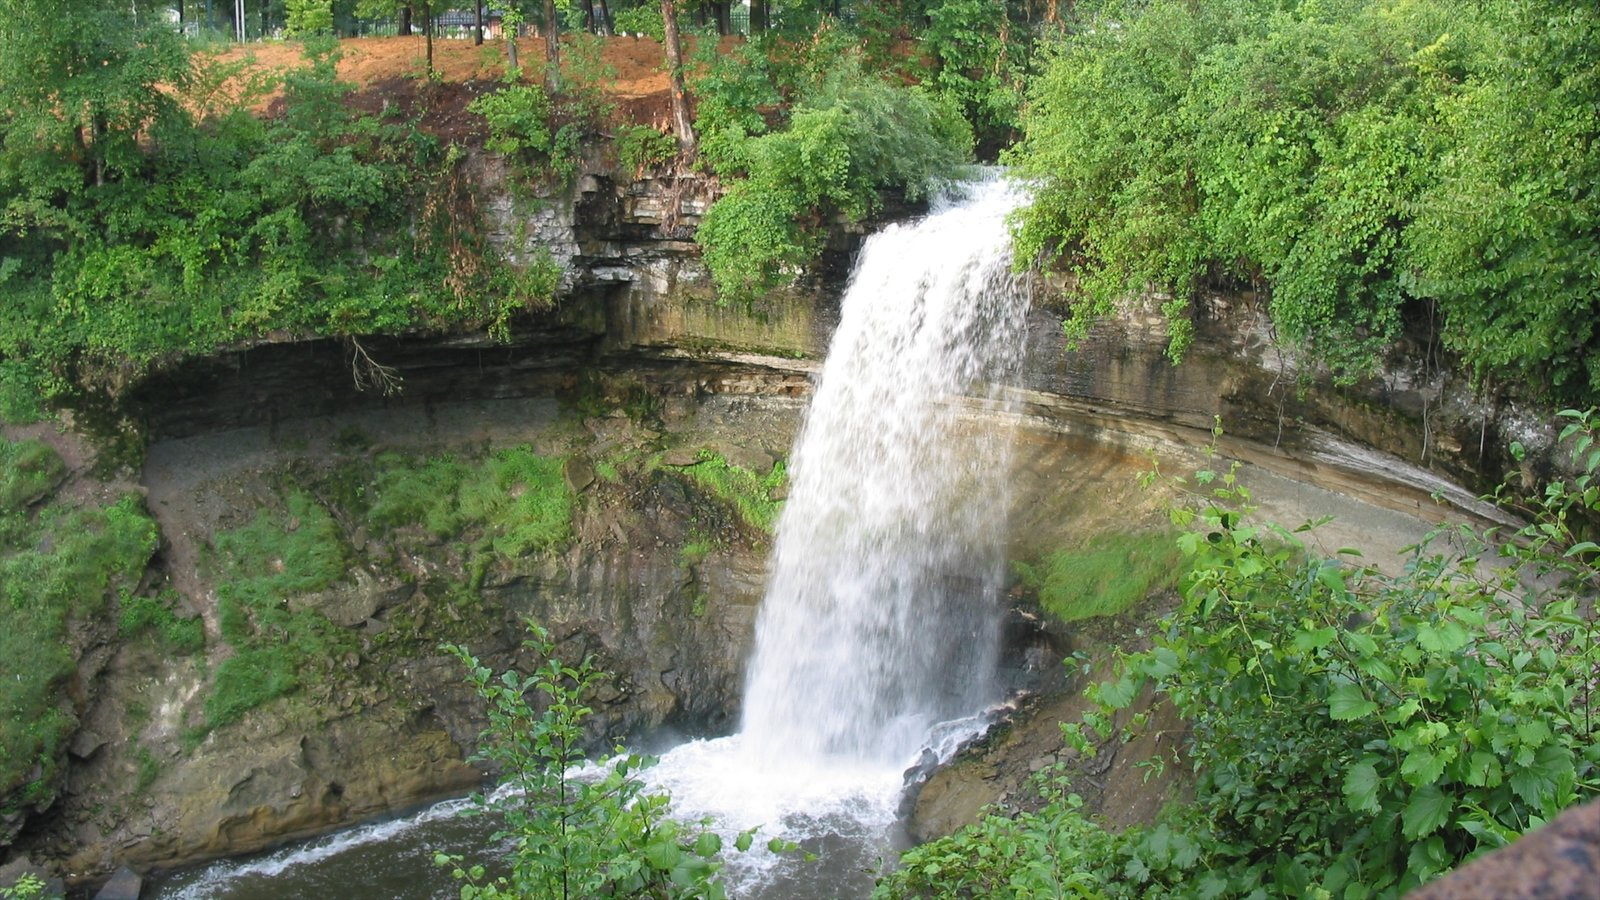 Minnehaha Park which includes a cascade and a park